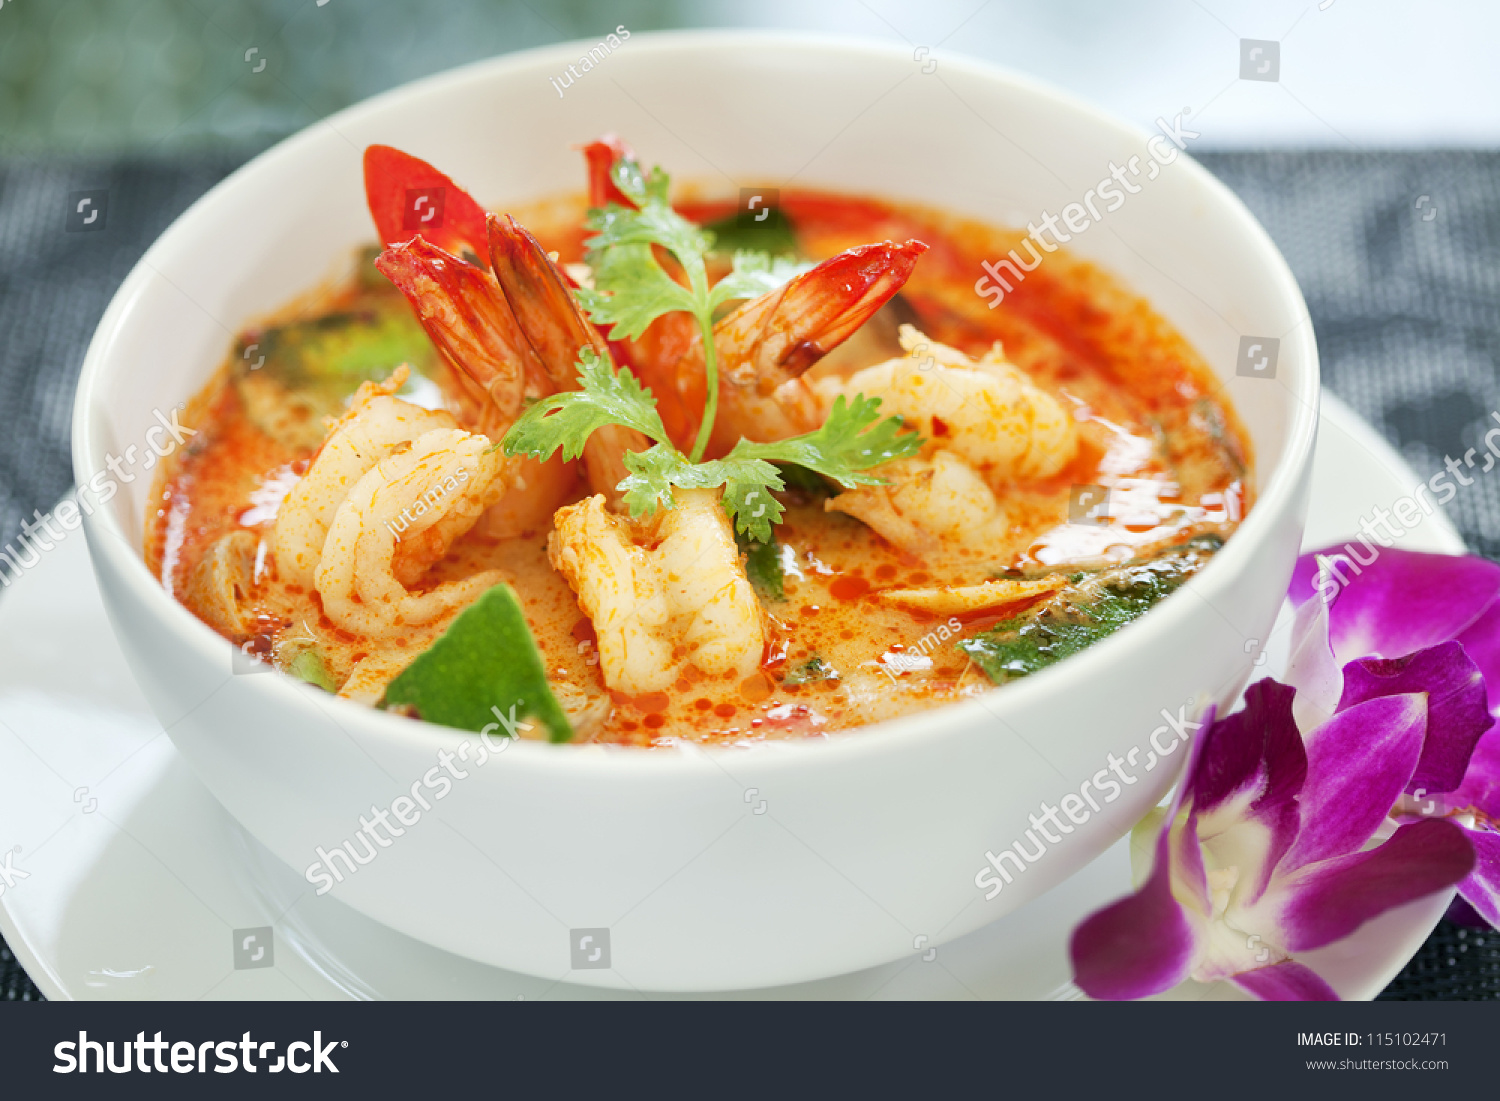 Tom yam kung thai cuisine stock photo 115102471 for About thai cuisine